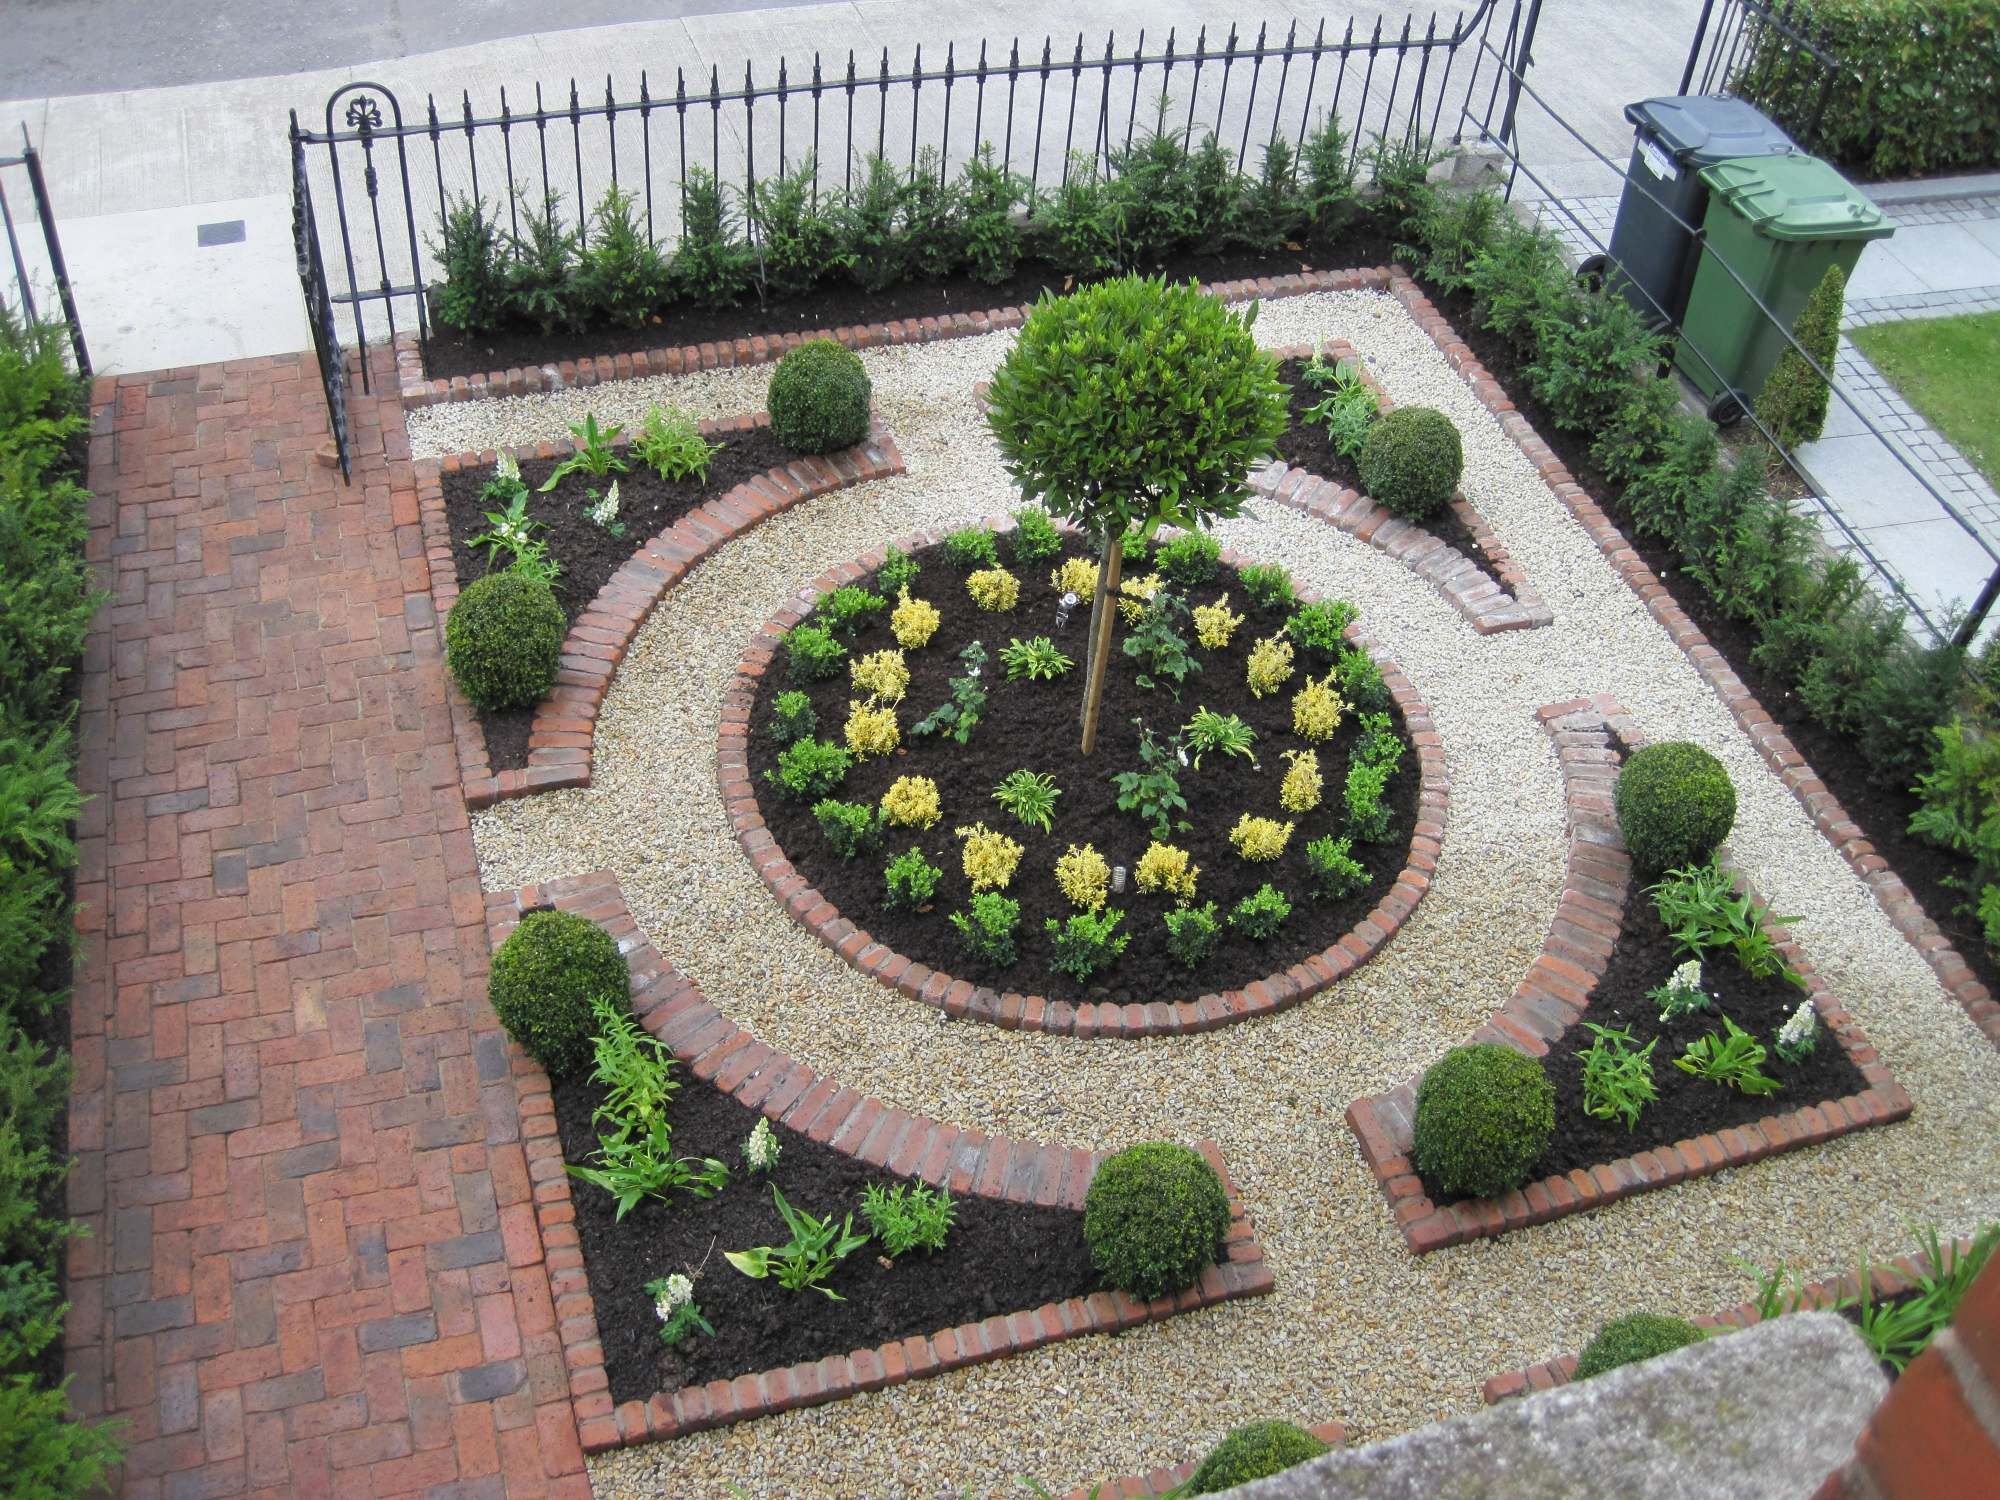 Formal Parterre for a Front Garden - Garden Design Dublin on Landscape Garden Designs For Small Gardens id=50555